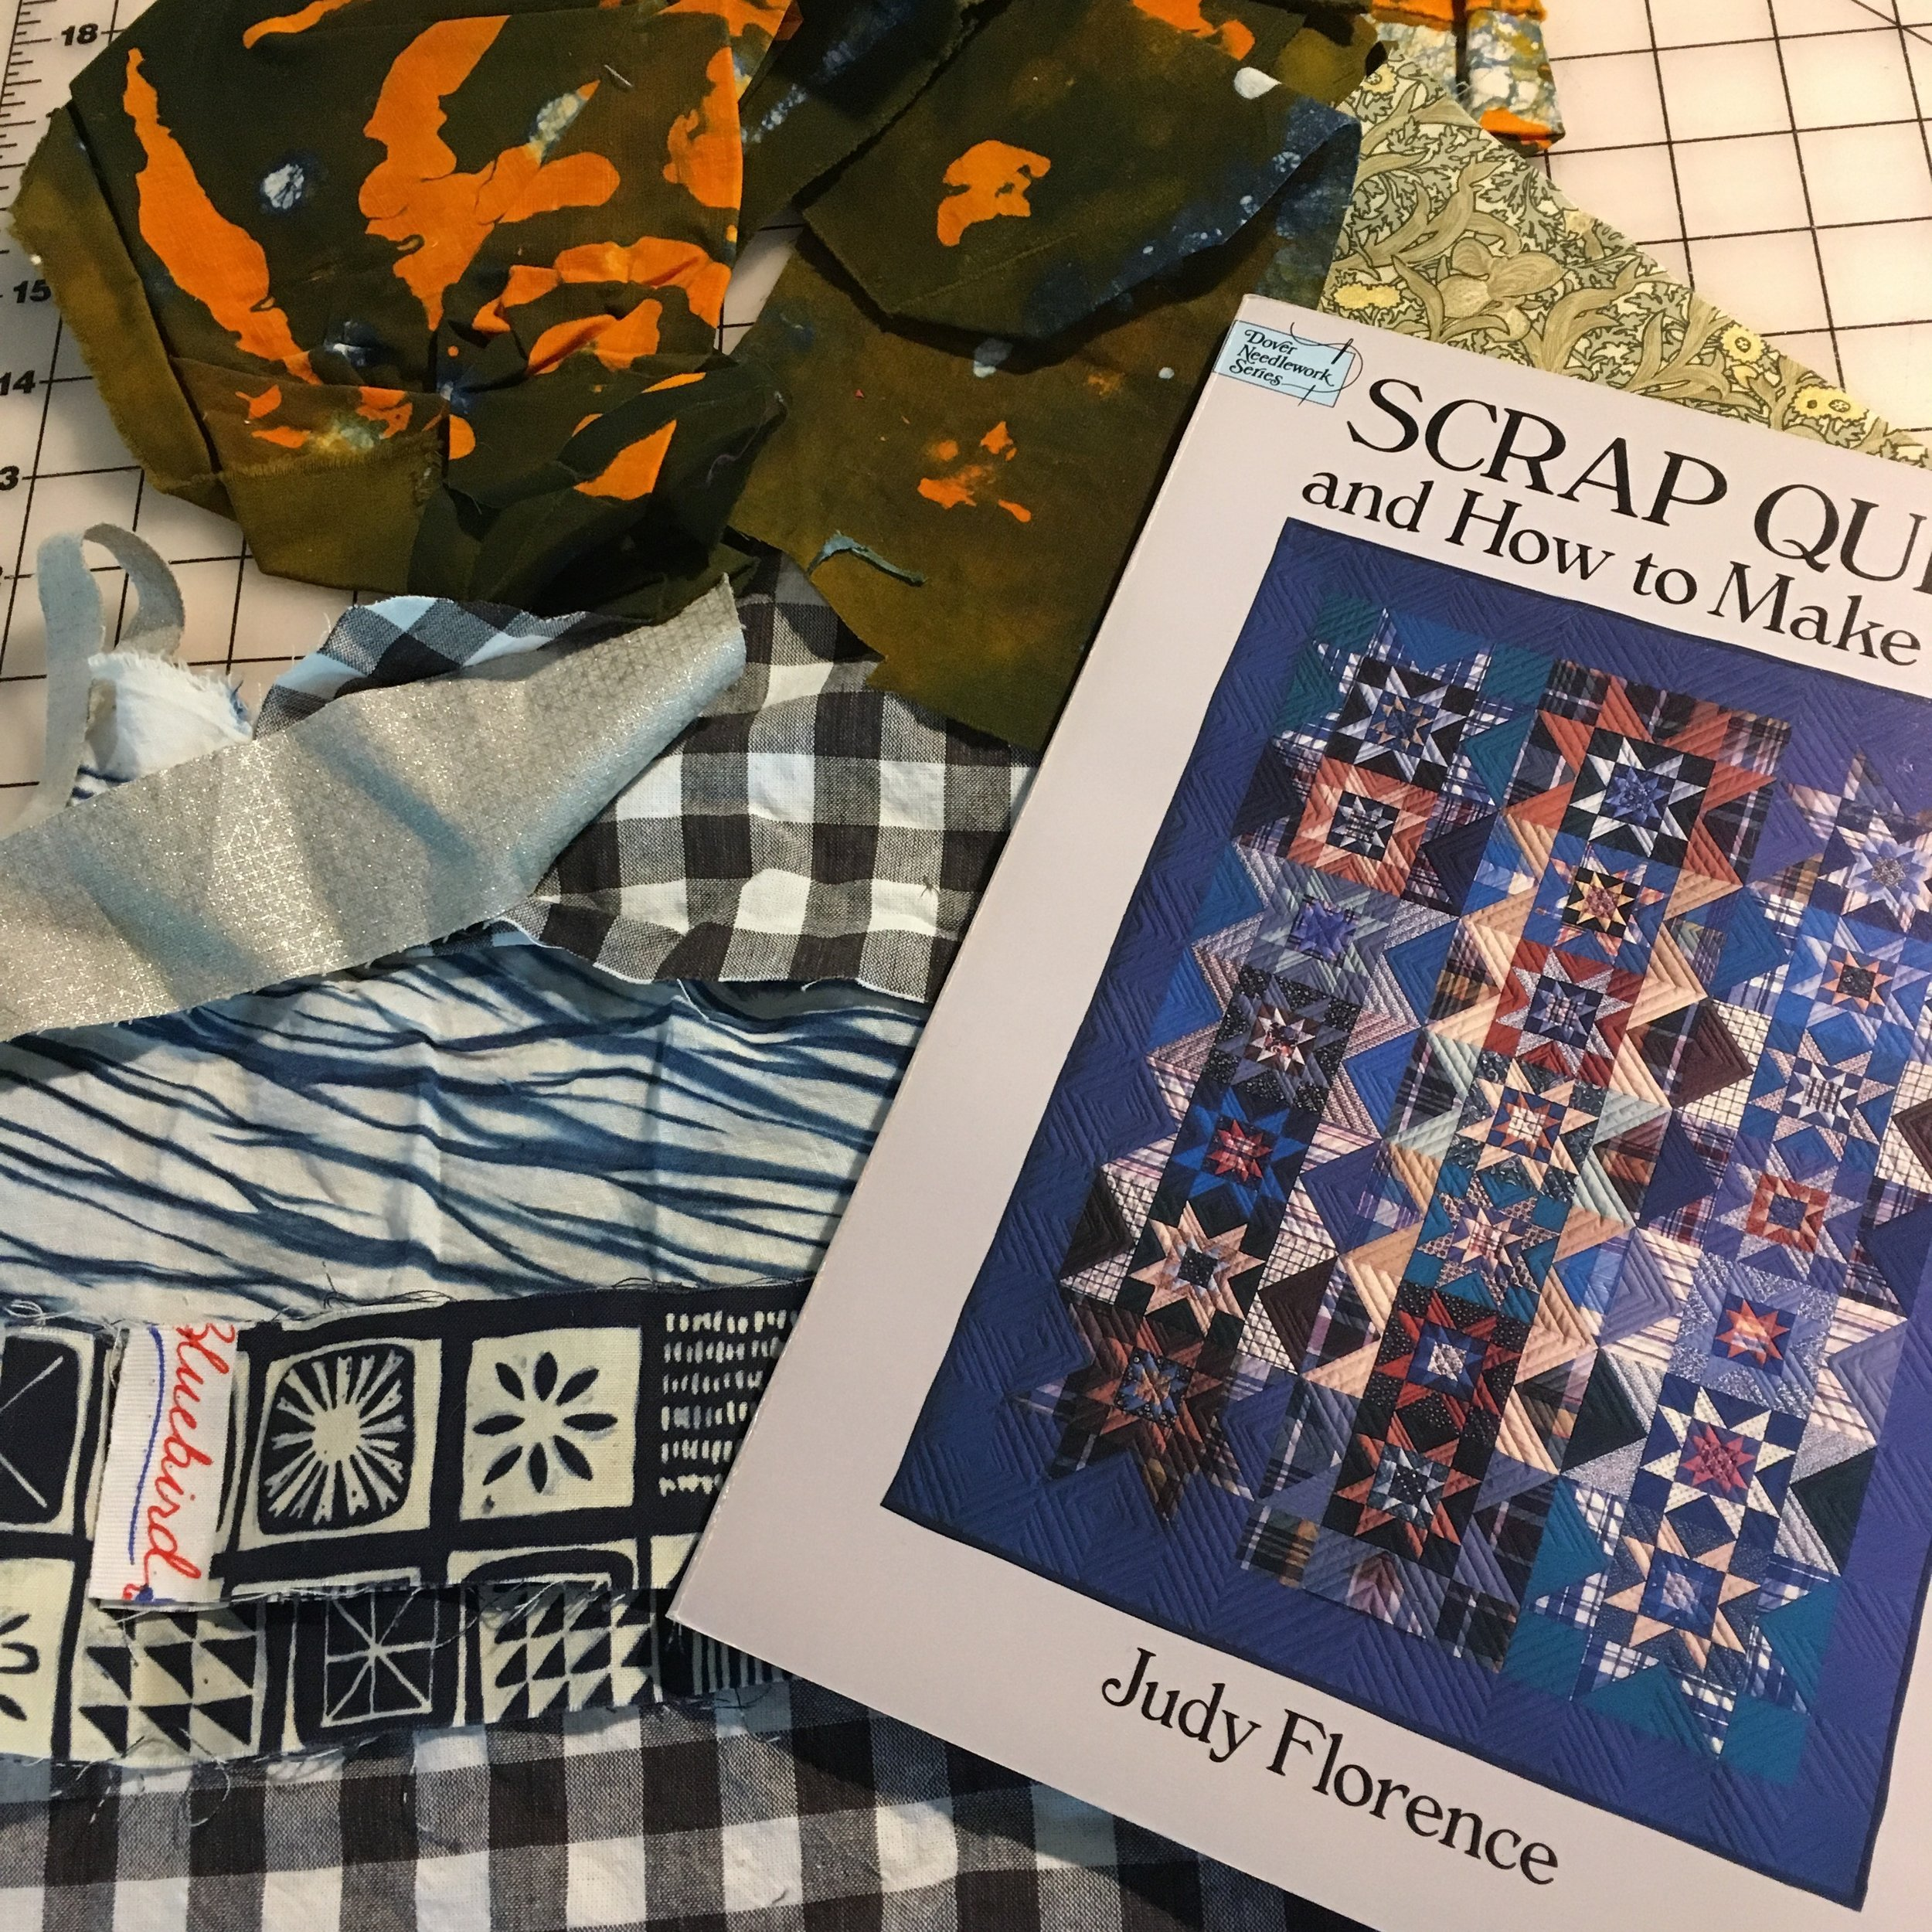 One of my favorite ways to recycle old clothes and scraps etc is by quilting.